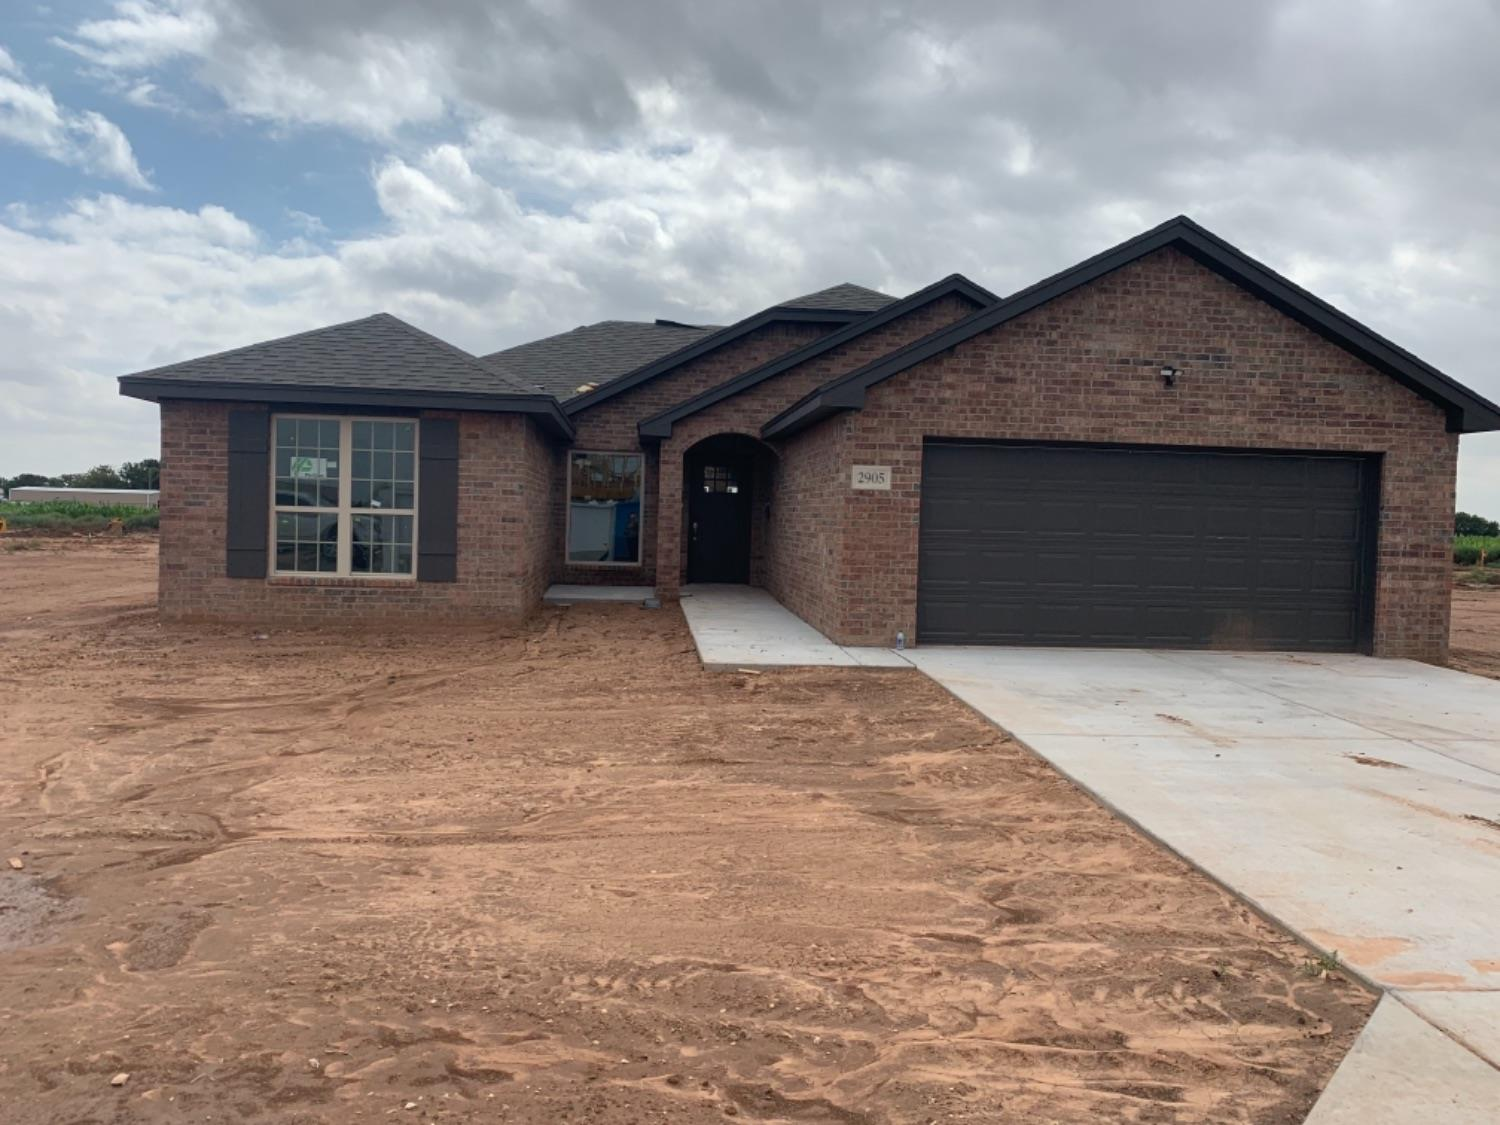 Brand new home located in Lubbock Cooper school district! Walking into this home you will be greeted with a vaulted ceiling in the living room, spacious open floor plan, tons of cabinet space in the kitchen with a large walk in pantry! The builder did not skimp on quality in this well designed home. You will find granite counter tops throughout, tiled tub surrounds, intricate details in the main area, and custom cabinets throughout the entire home. The luxury master suite is isolated with double sinks in the master, walk in closet and tiled tub surround. Secluded utility room as well as a built in desk, perfect for a homework station or an at home office!  Sprinkler, grass and fence with metal posts included! This home will not last long, call today to schedule your private showing.